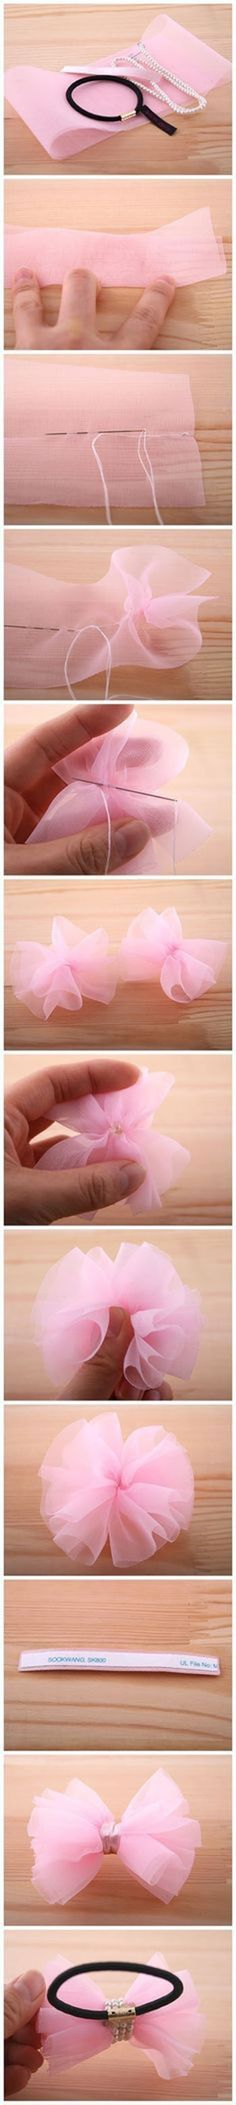 Diy Beautiful Hair Clip | DIY & Crafts